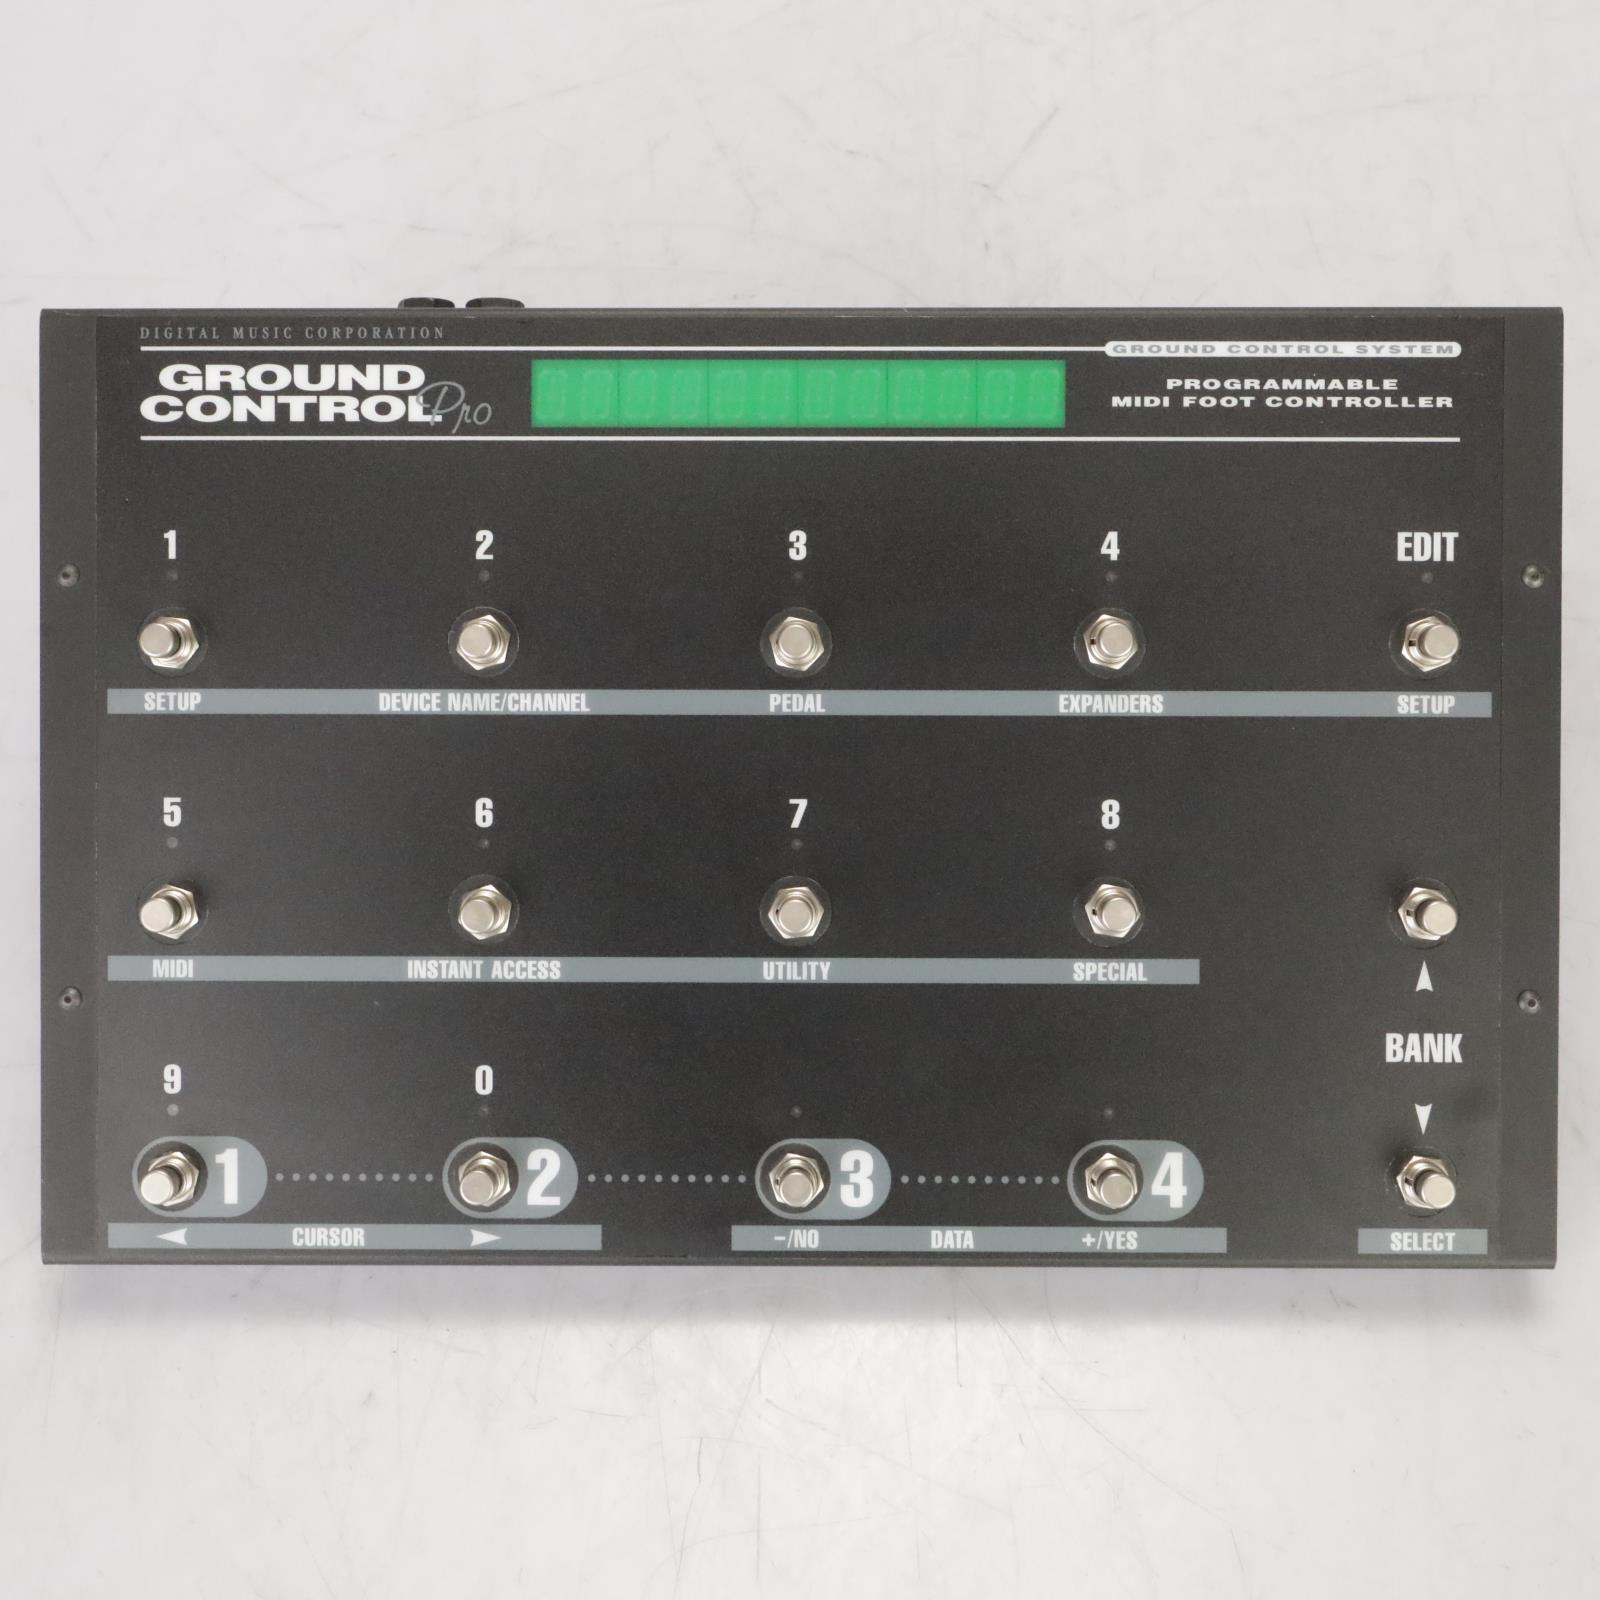 Digital Music Corporation Voodoo Lab Ground Control Pro Owned by Garbage #38674